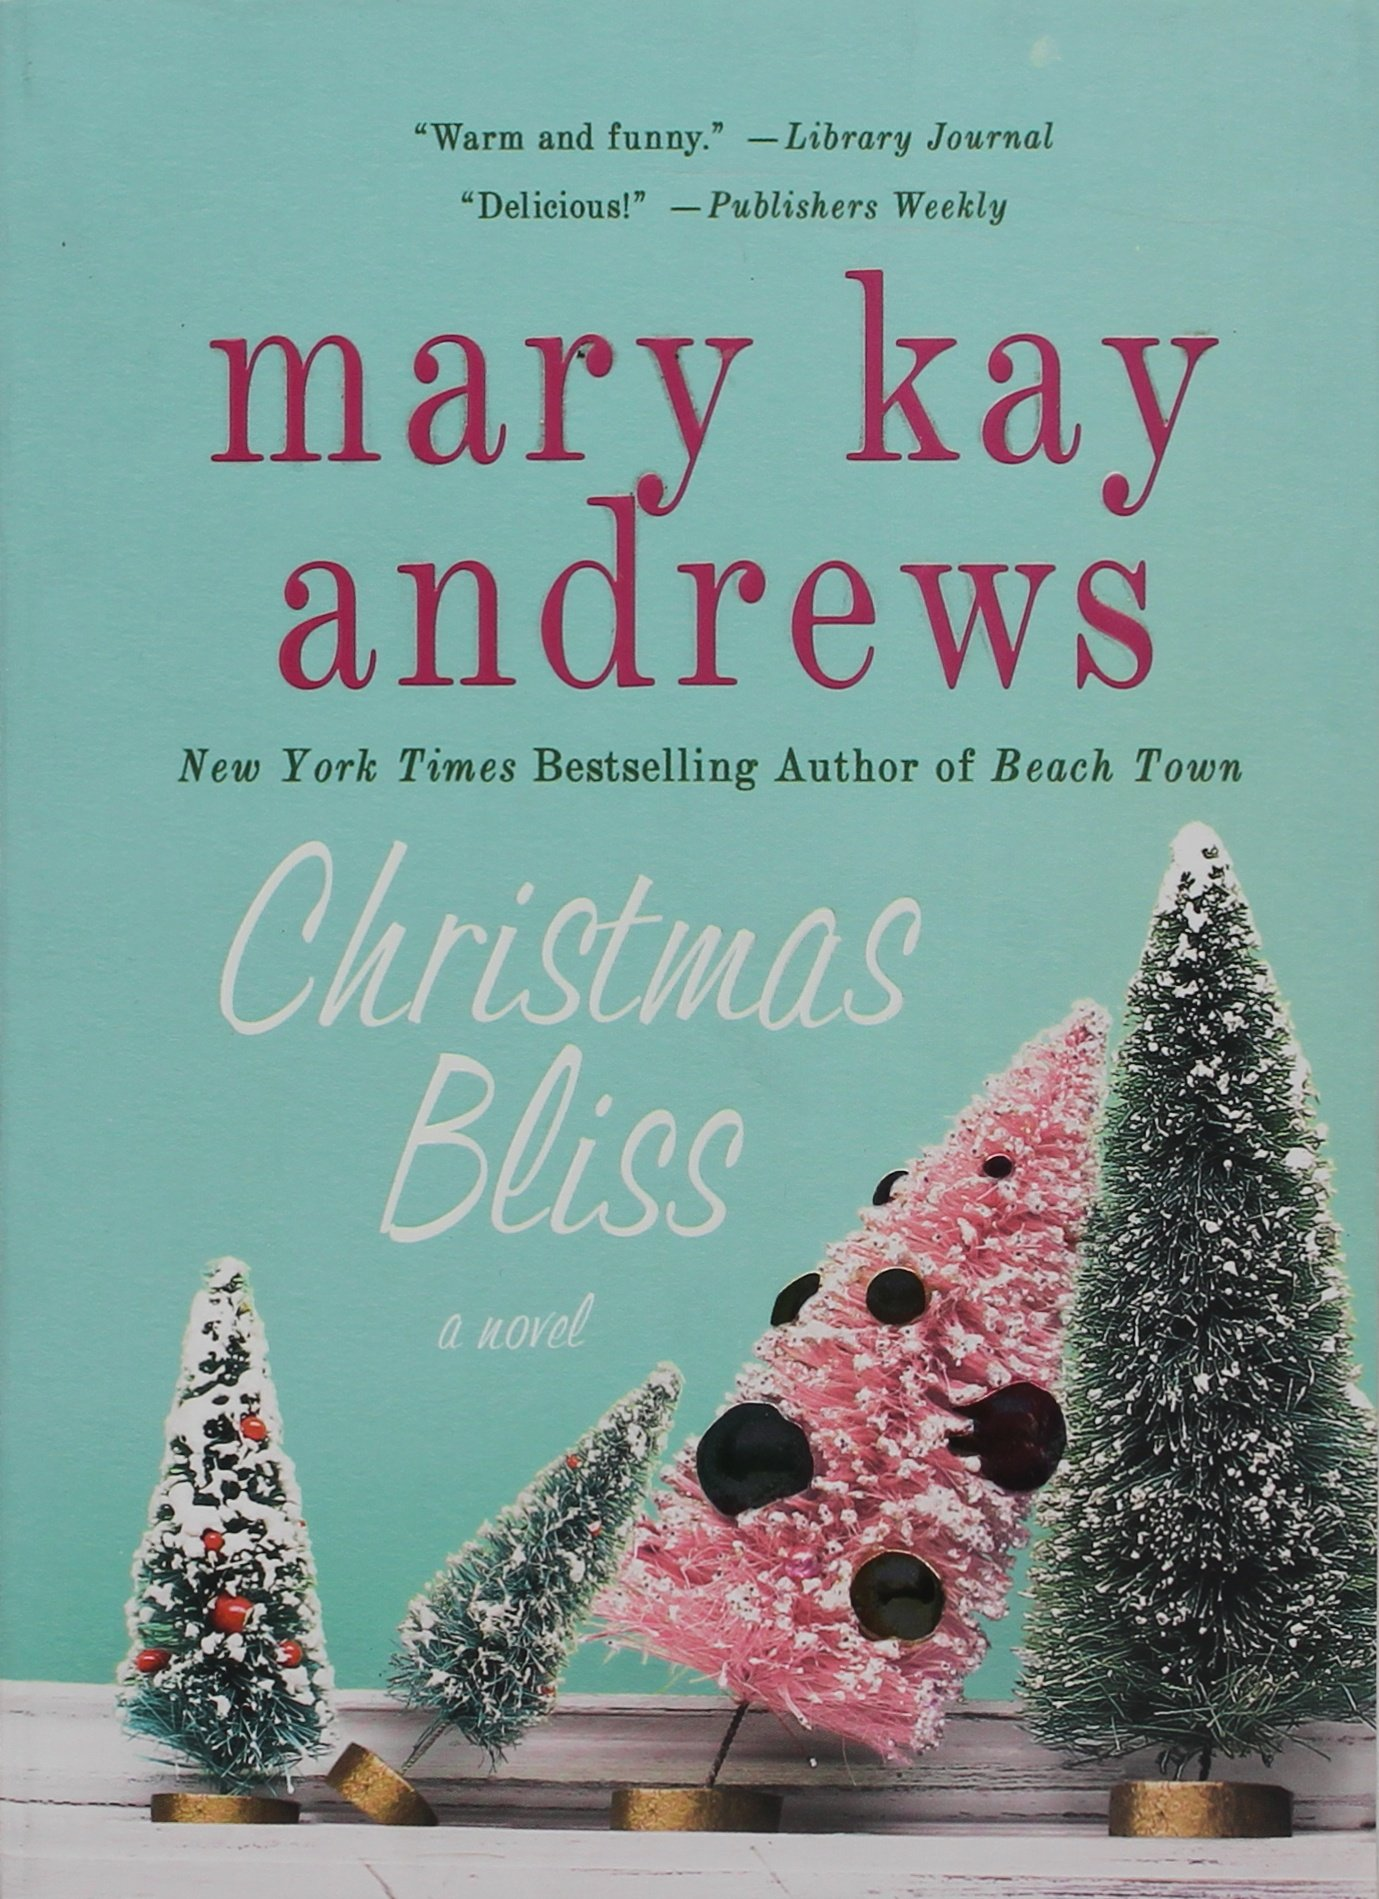 Mary Kay Christmas Images.Christmas Bliss A Novel Mary Kay Andrews Amazon Com Books